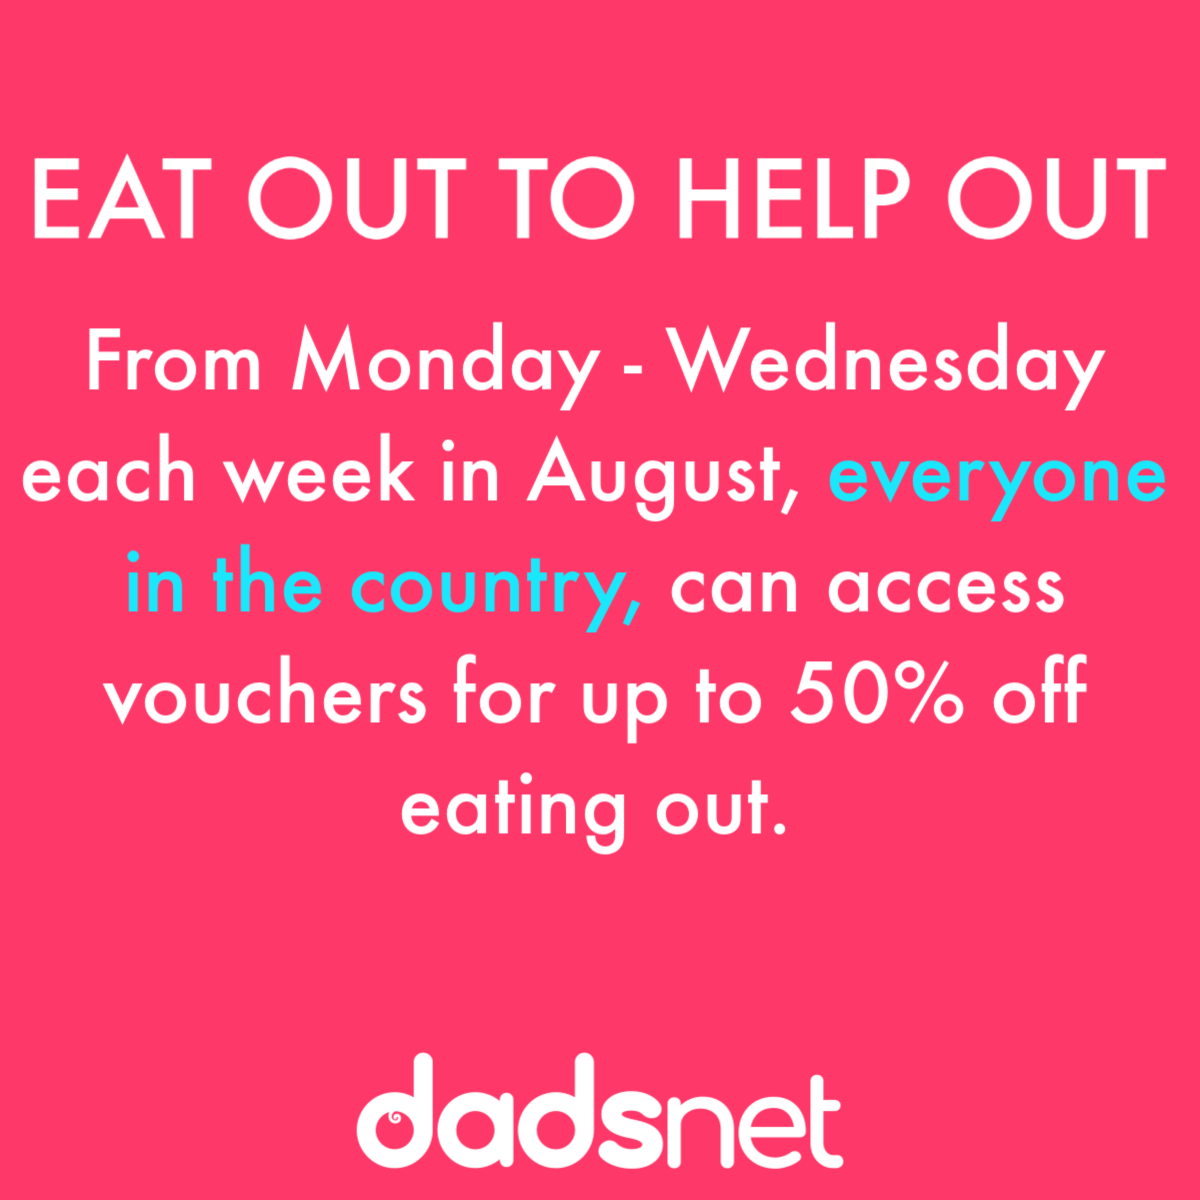 How 50% Eat Out to Help Out discount in restaurant and pub meals will work, Facebook Post 12%, daily-dad%